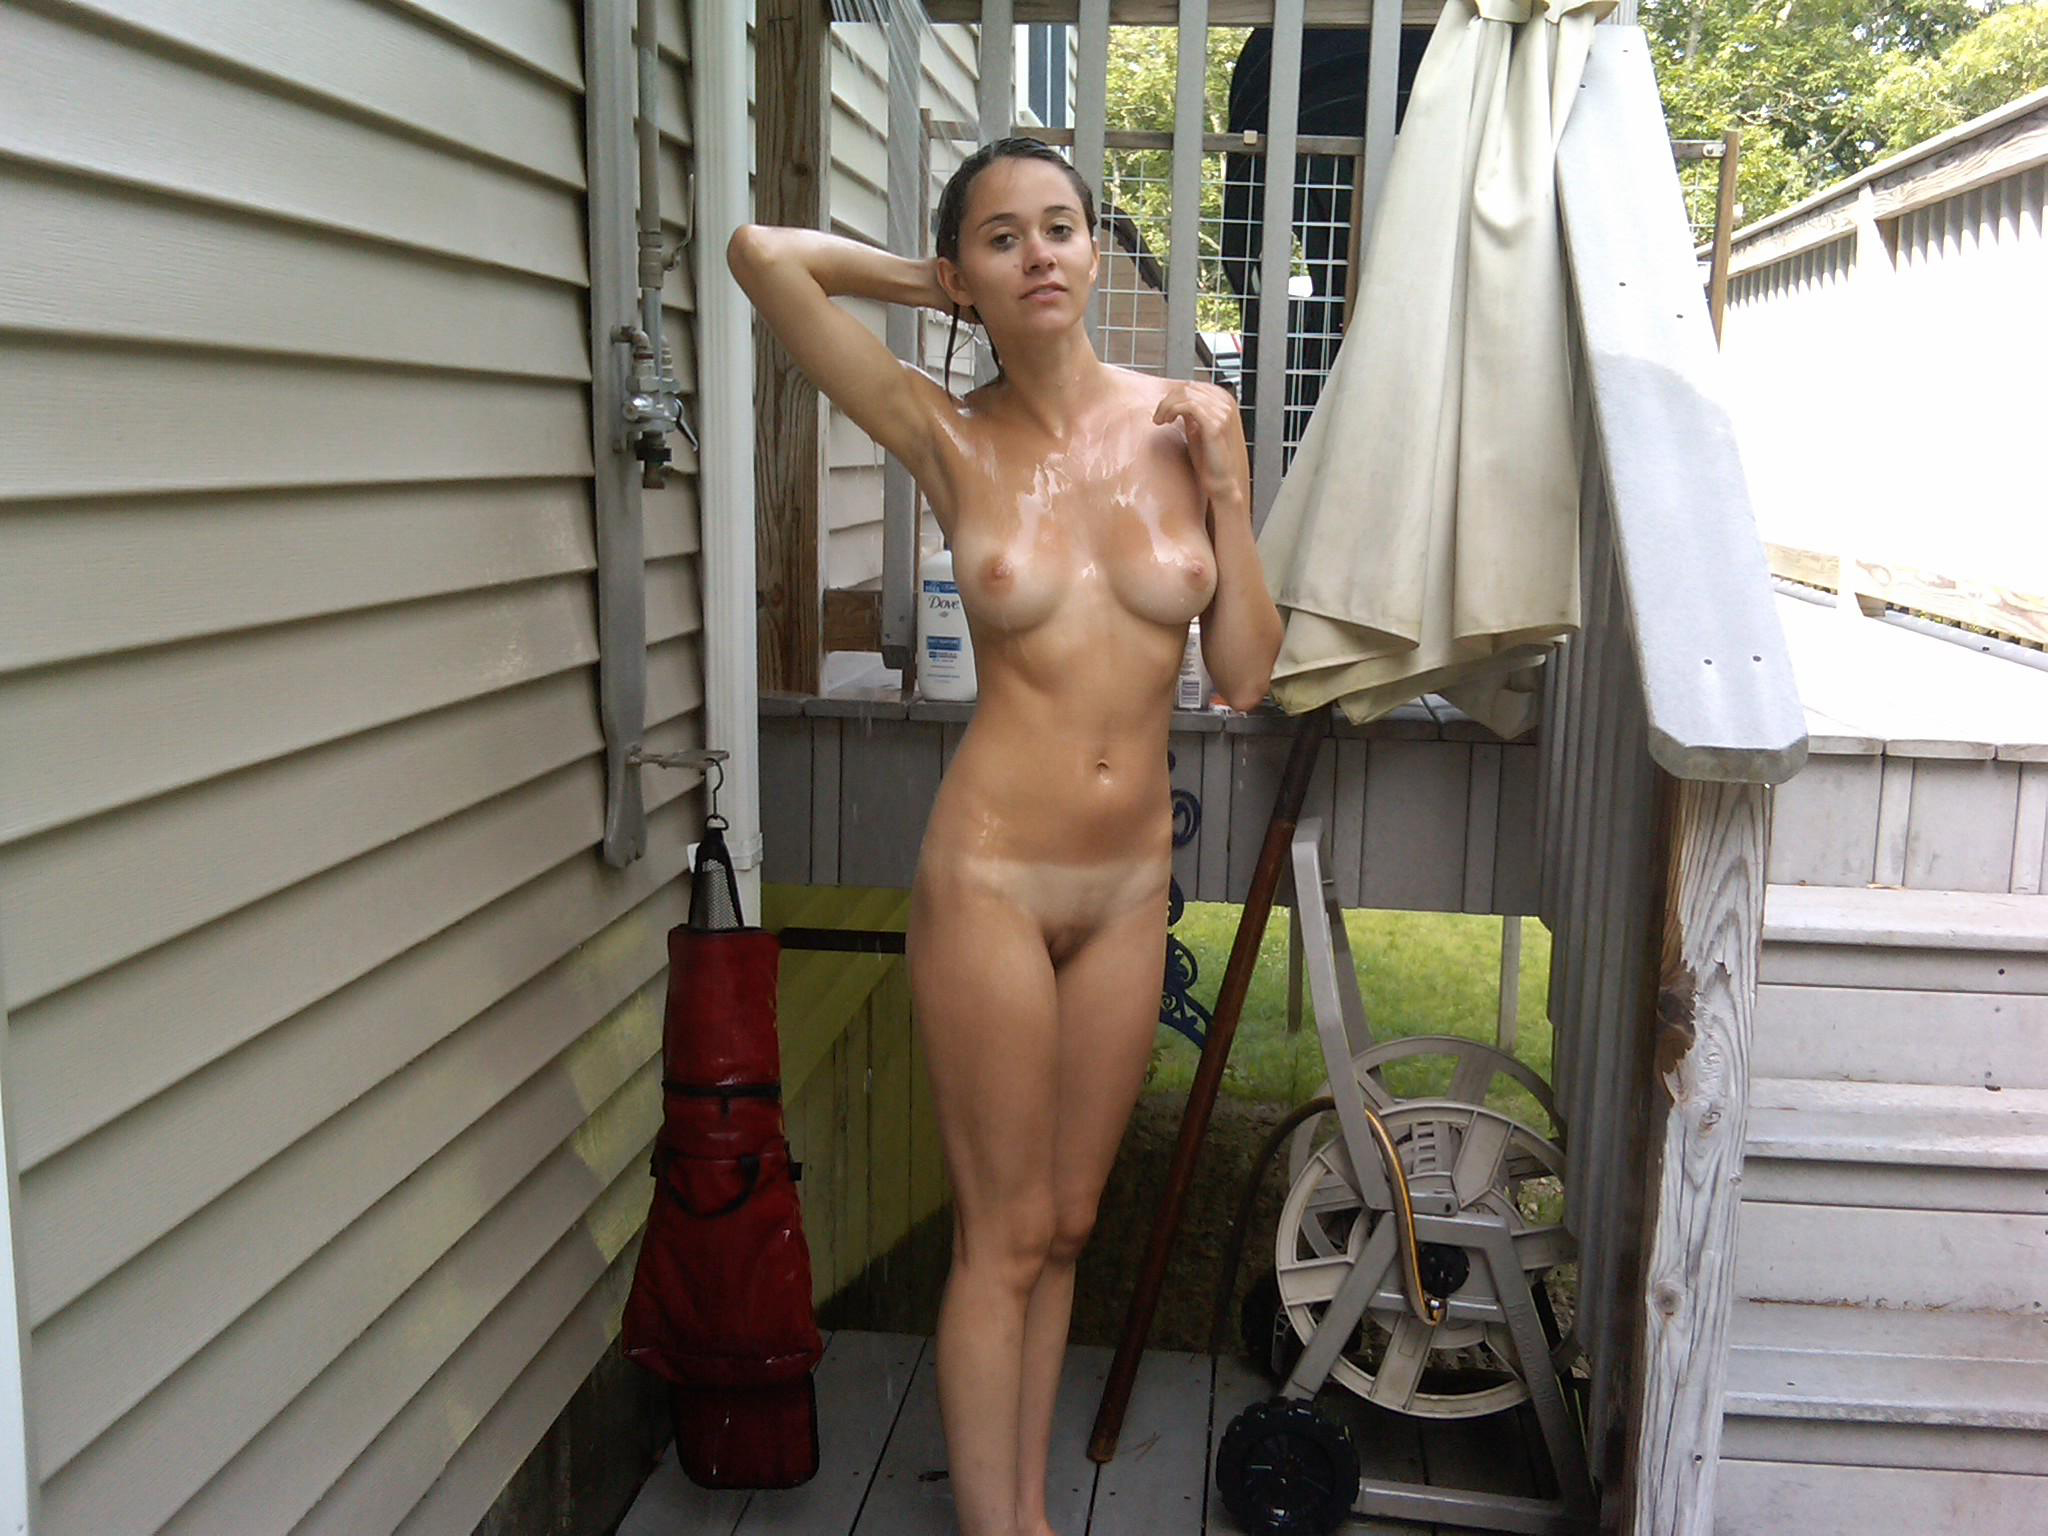 free-images-hot-naked-girls-amatuer-outdoors-juvenile-girls-in-revealing-pics